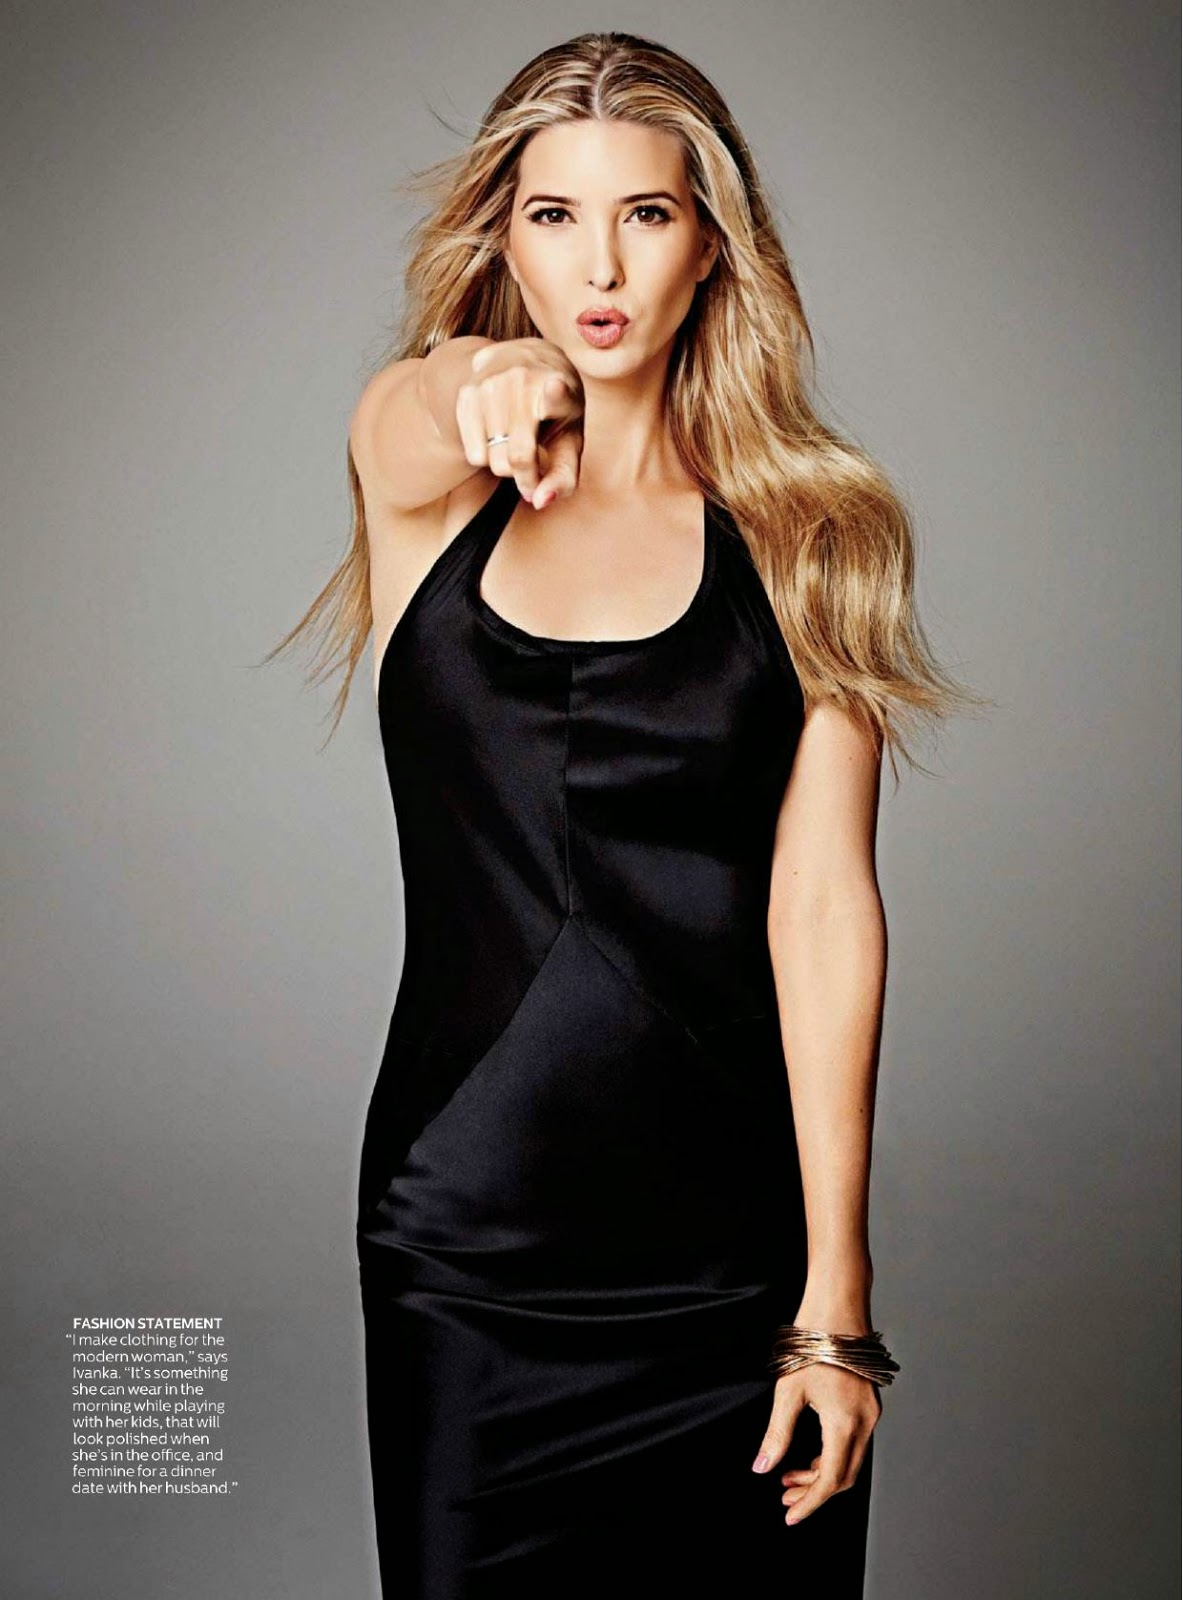 Barron Trump 2014 >> Magazines - The Charmer Pages : Ivanka Trump For Shape Magazine, US, May 2014